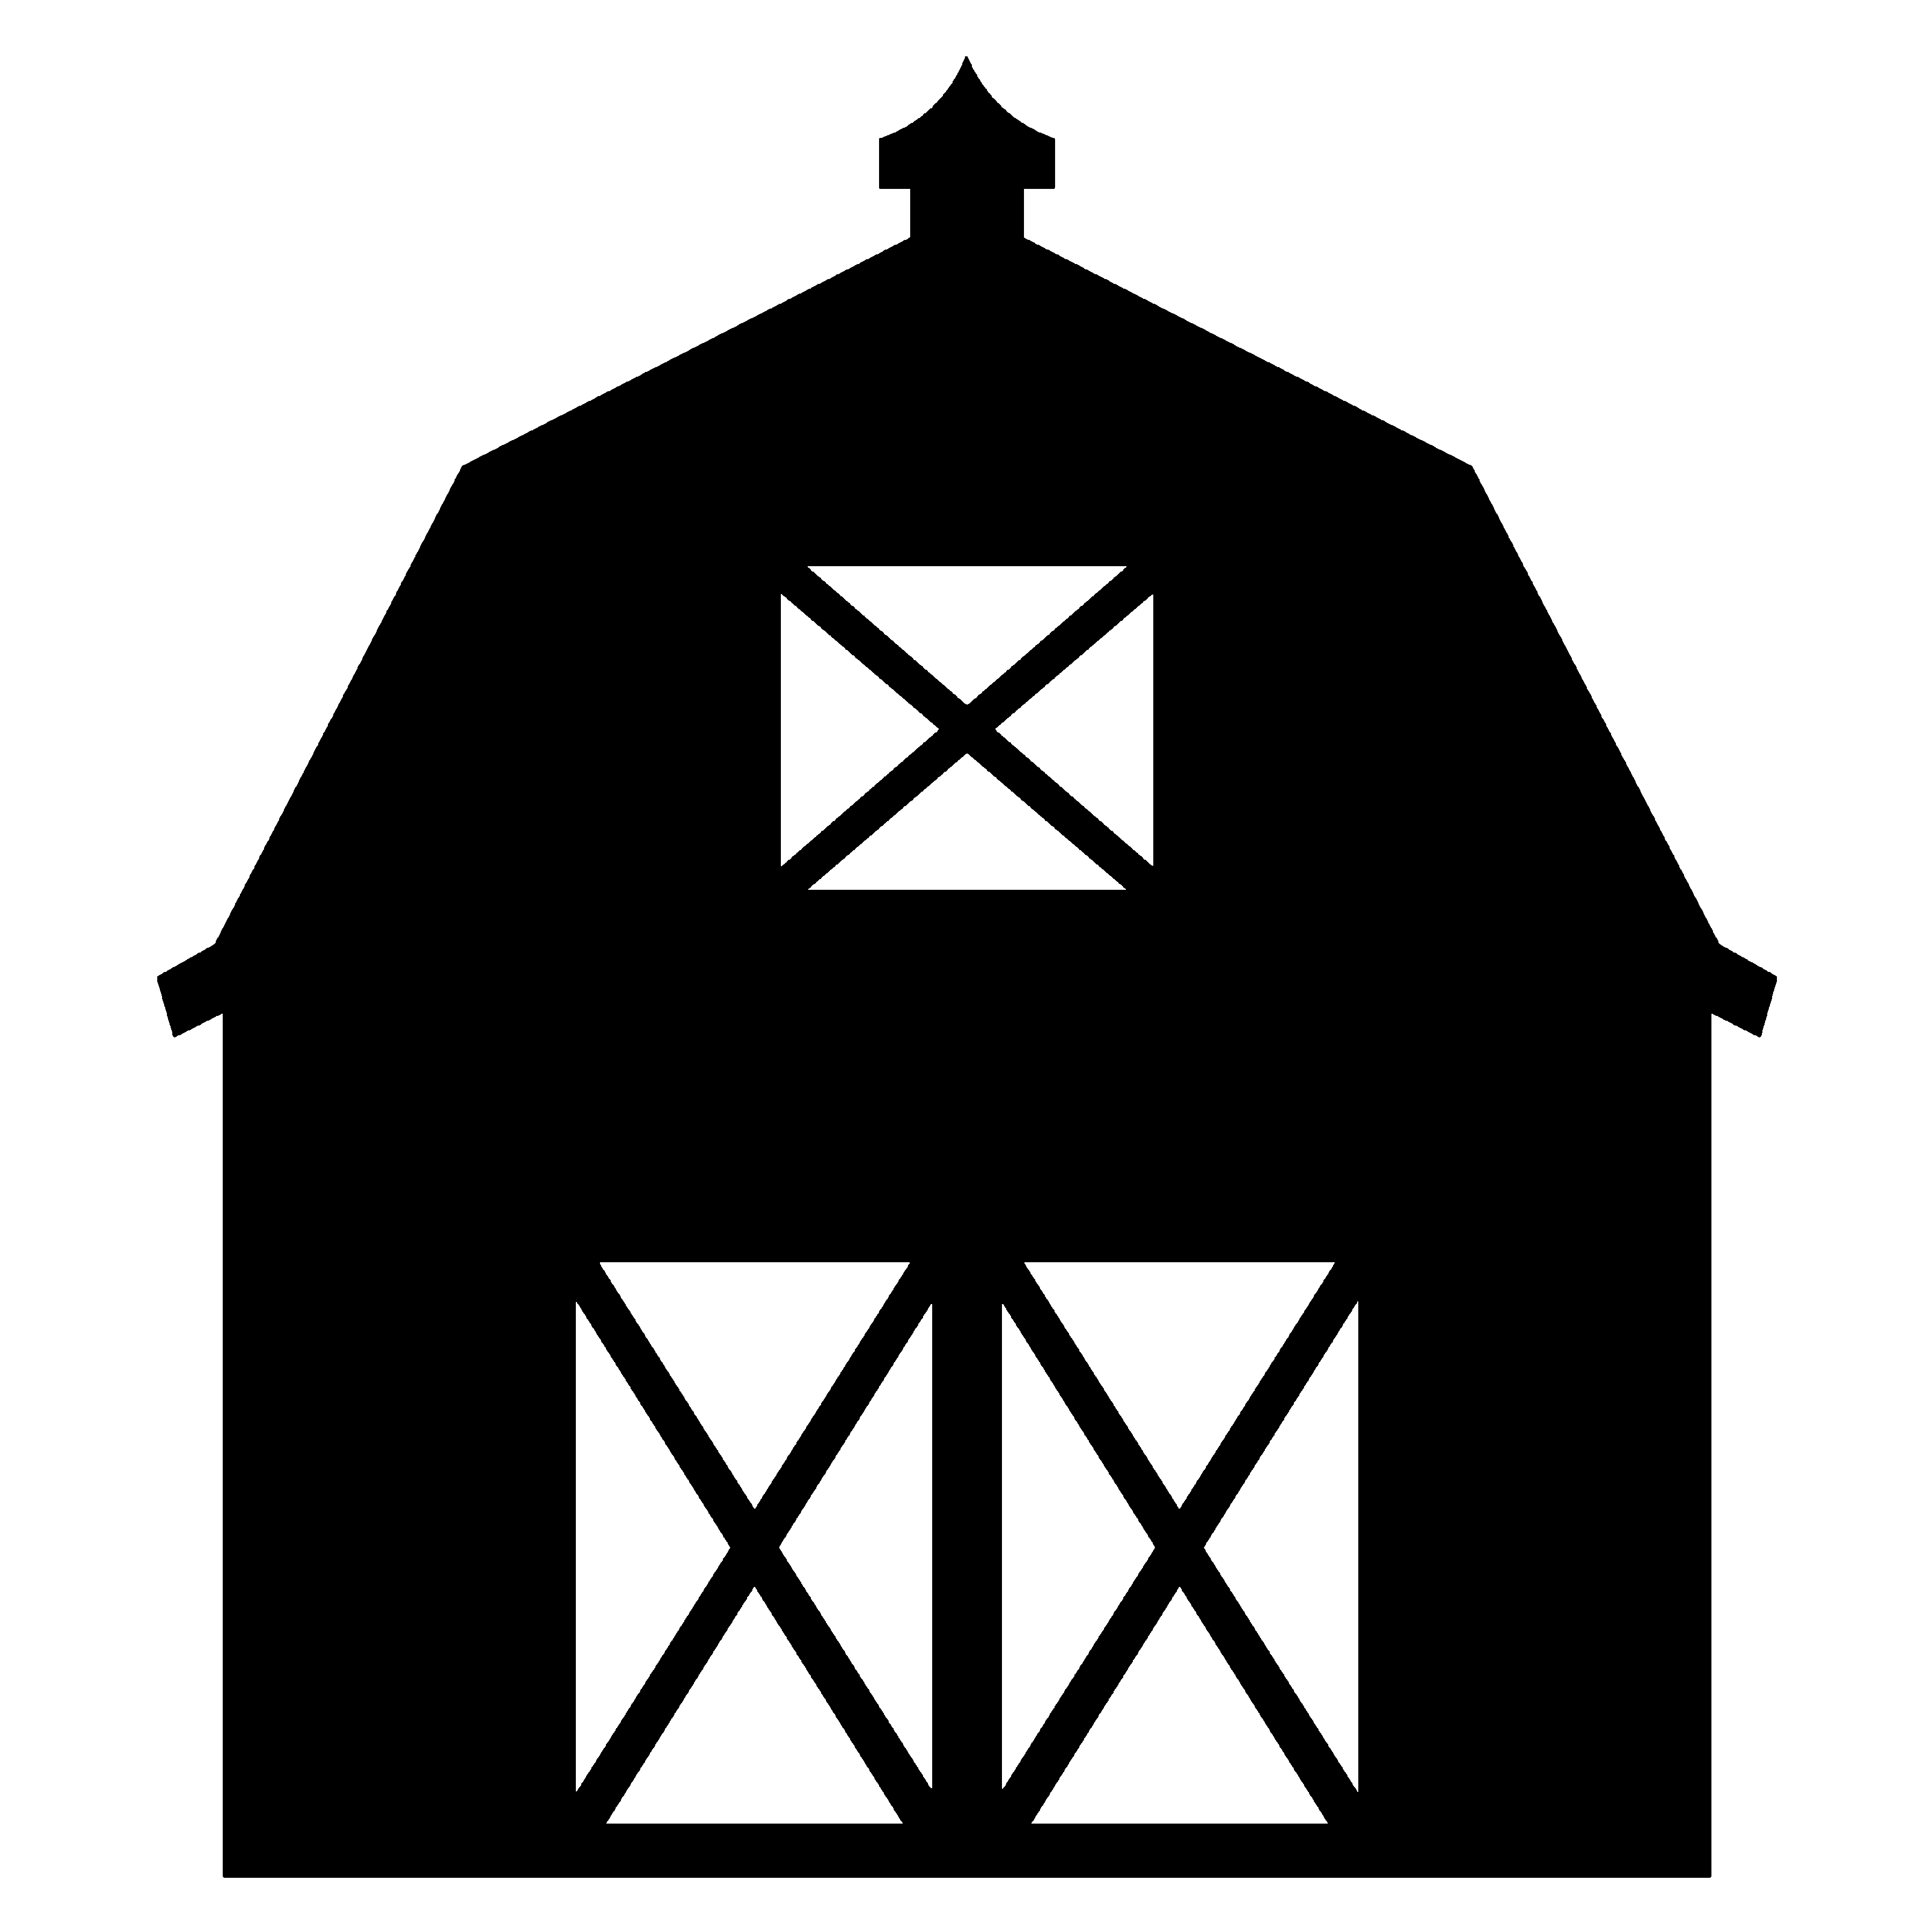 Barn Silhouette Surrounded By Shrubs Clipart Free Clip Art Images Silhouette Clip Art Clip Art Silhouette Stencil